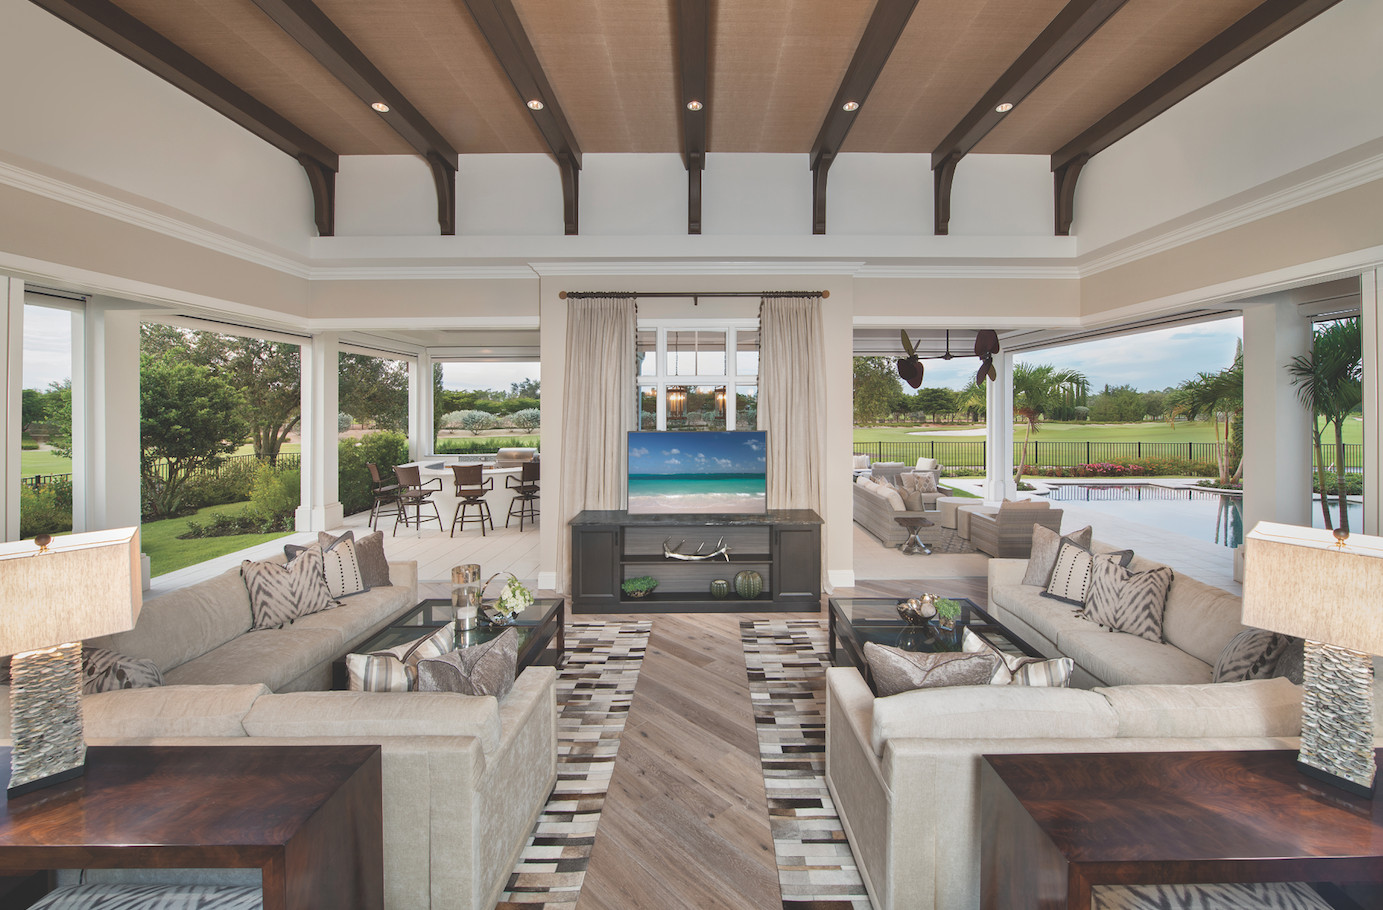 This Beautiful Living Room Was Featured In The January 2016 Edition Of Home Design Magazine